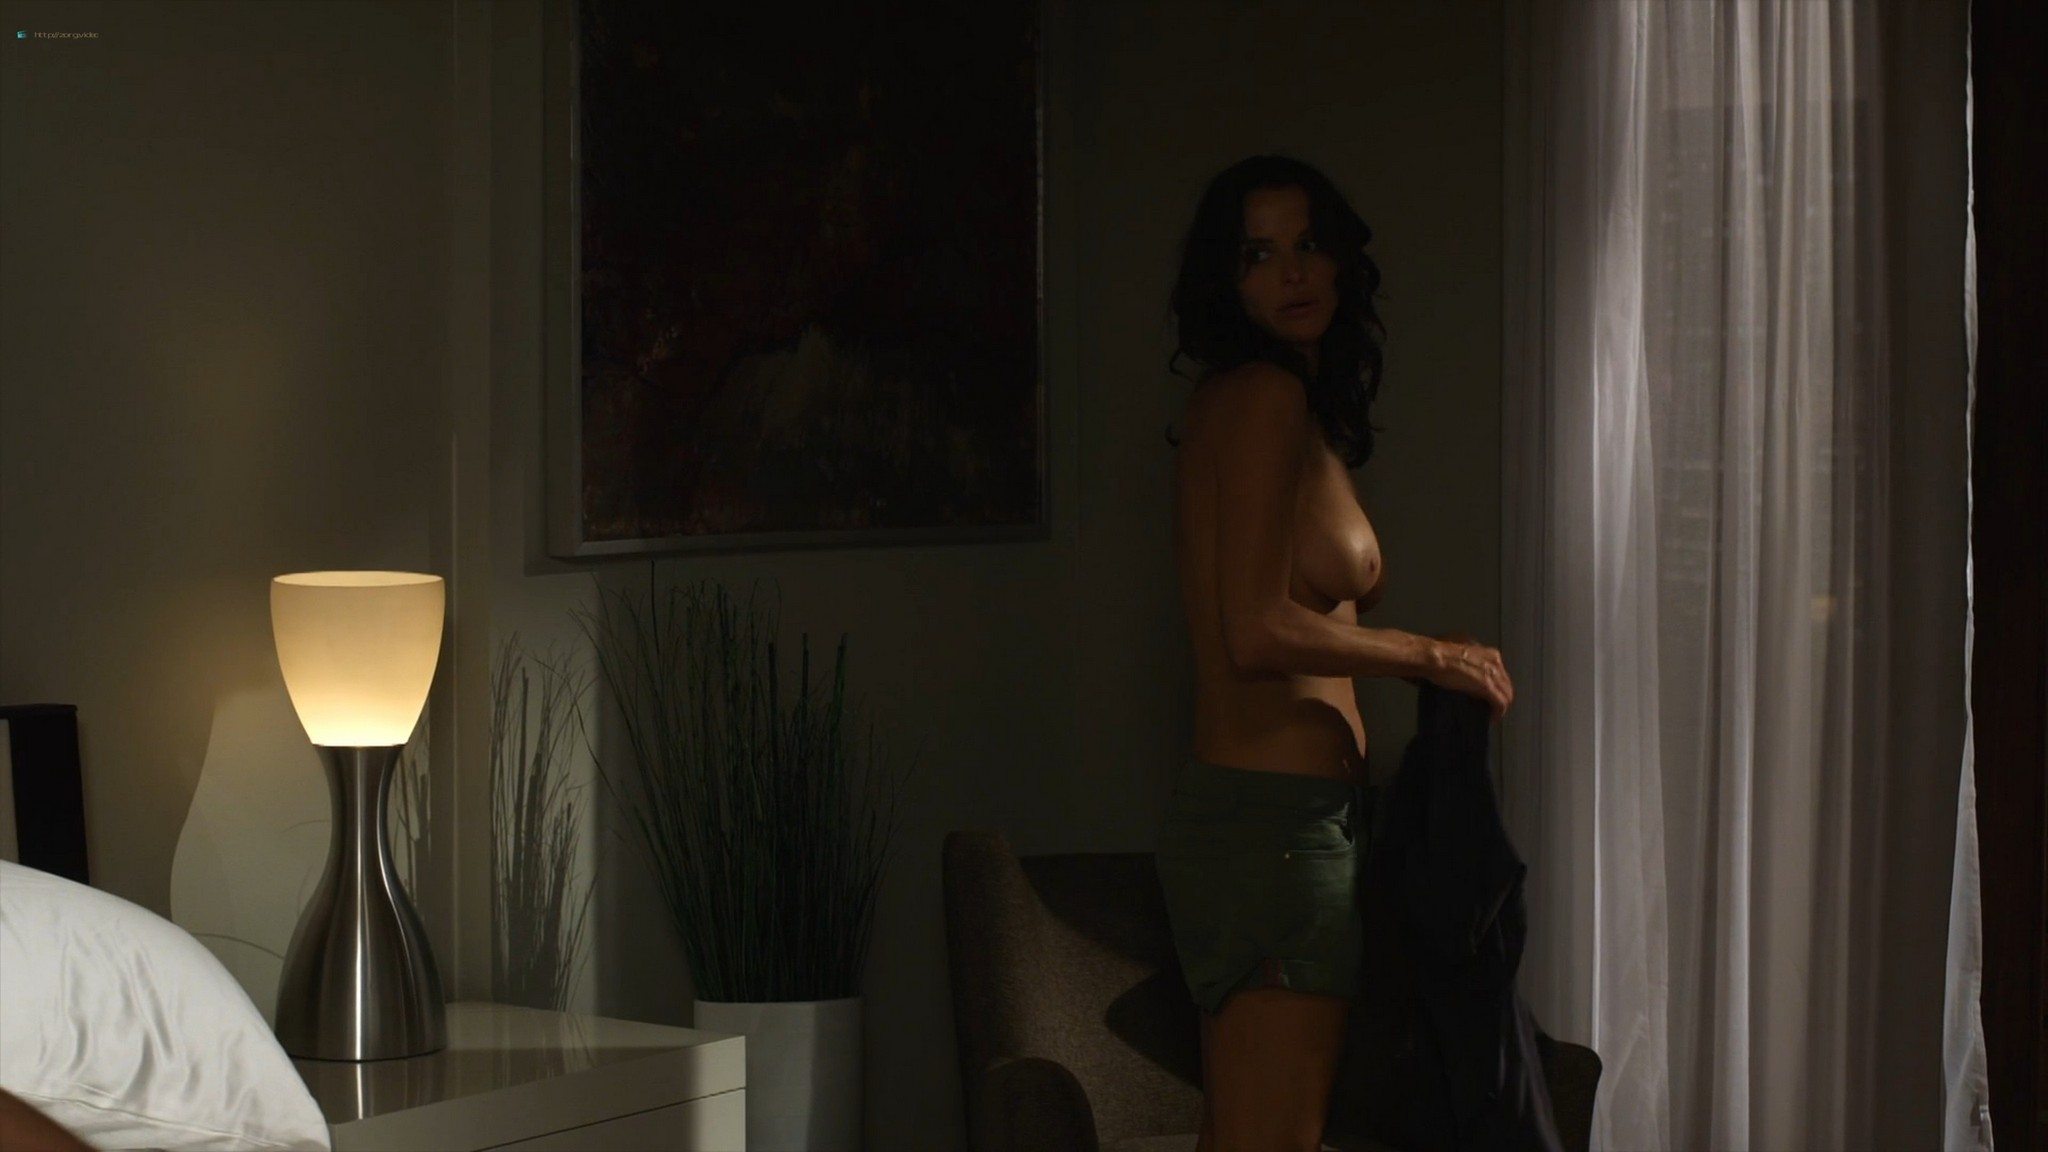 Ana Alexander nude sex Jill Evyn and others nude - Chemistry (2011) s1e9 HD 1080p (12)